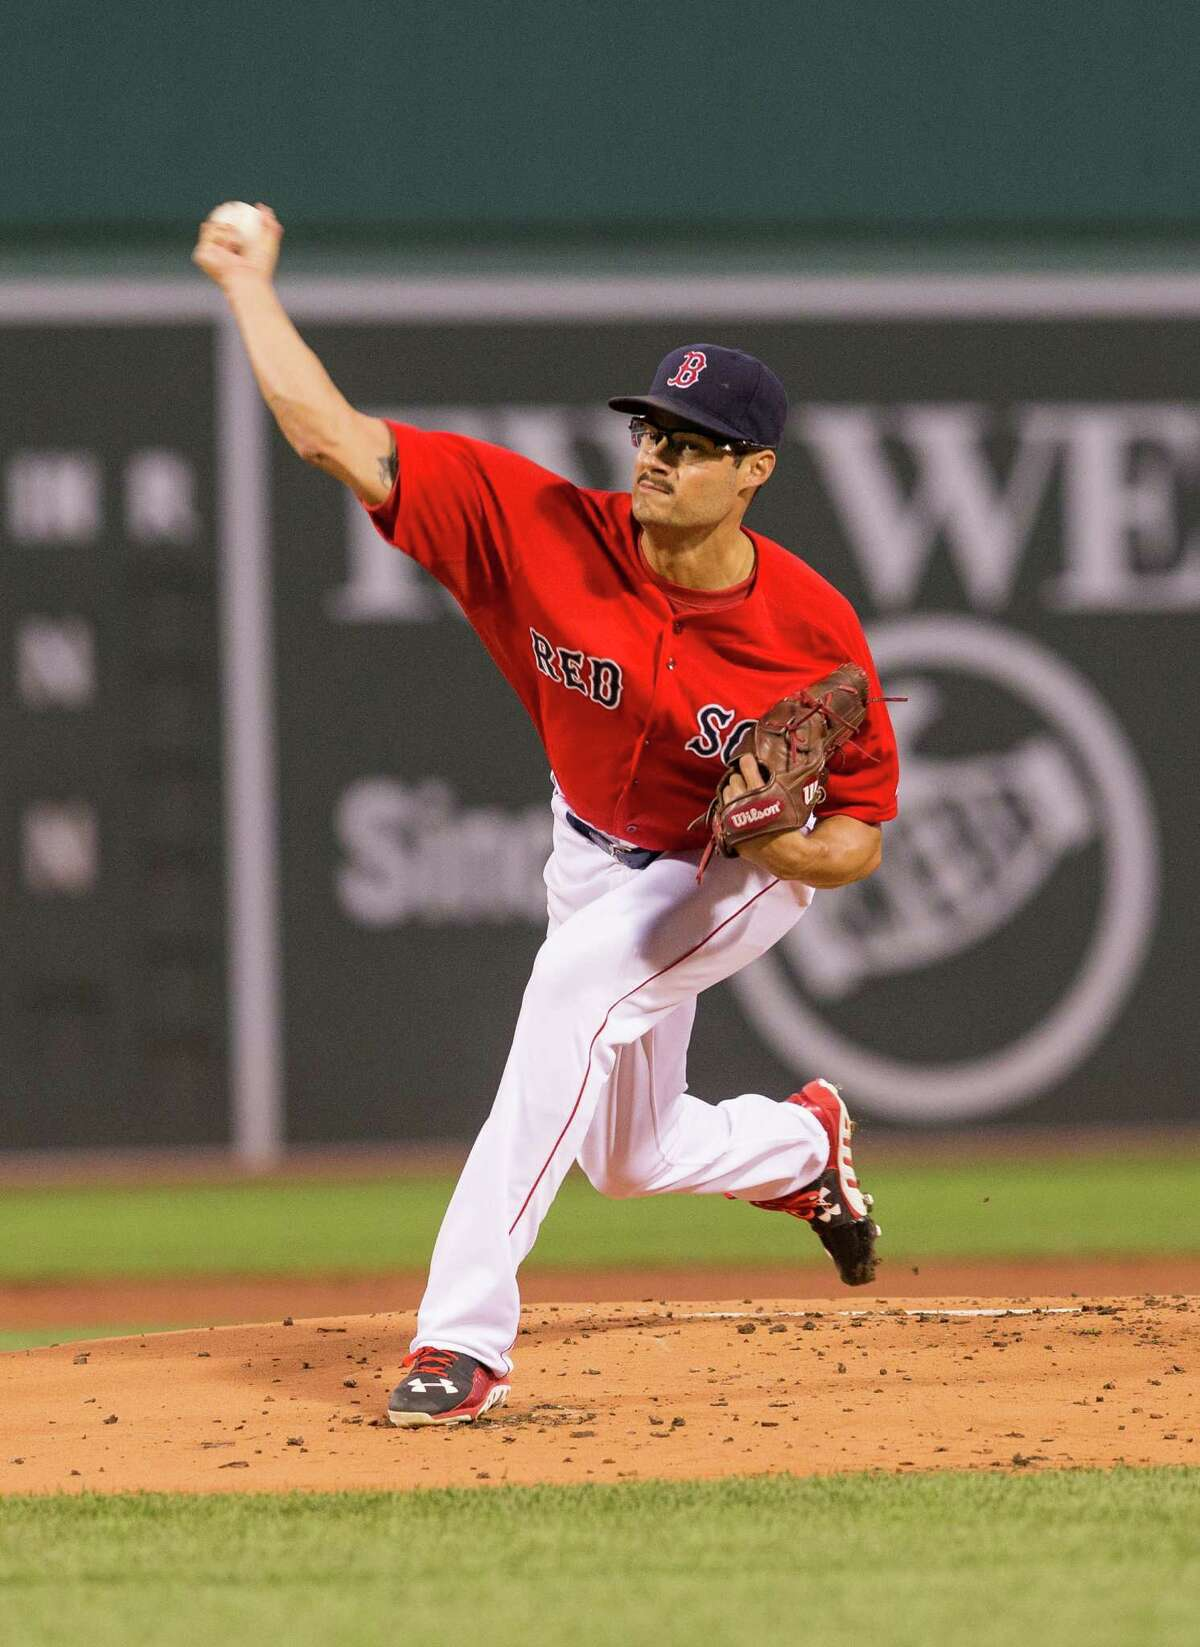 BOSTON, MA - SEPTEMBER 4: Joe Kelly #56 of the Boston Red Sox pitches during the first inning against the Philadelphia Phillies at Fenway Park on September 4, 2015 in Boston, Massachusetts. (Photo by Rich Gagnon/Getty Images) ORG XMIT: 538594239